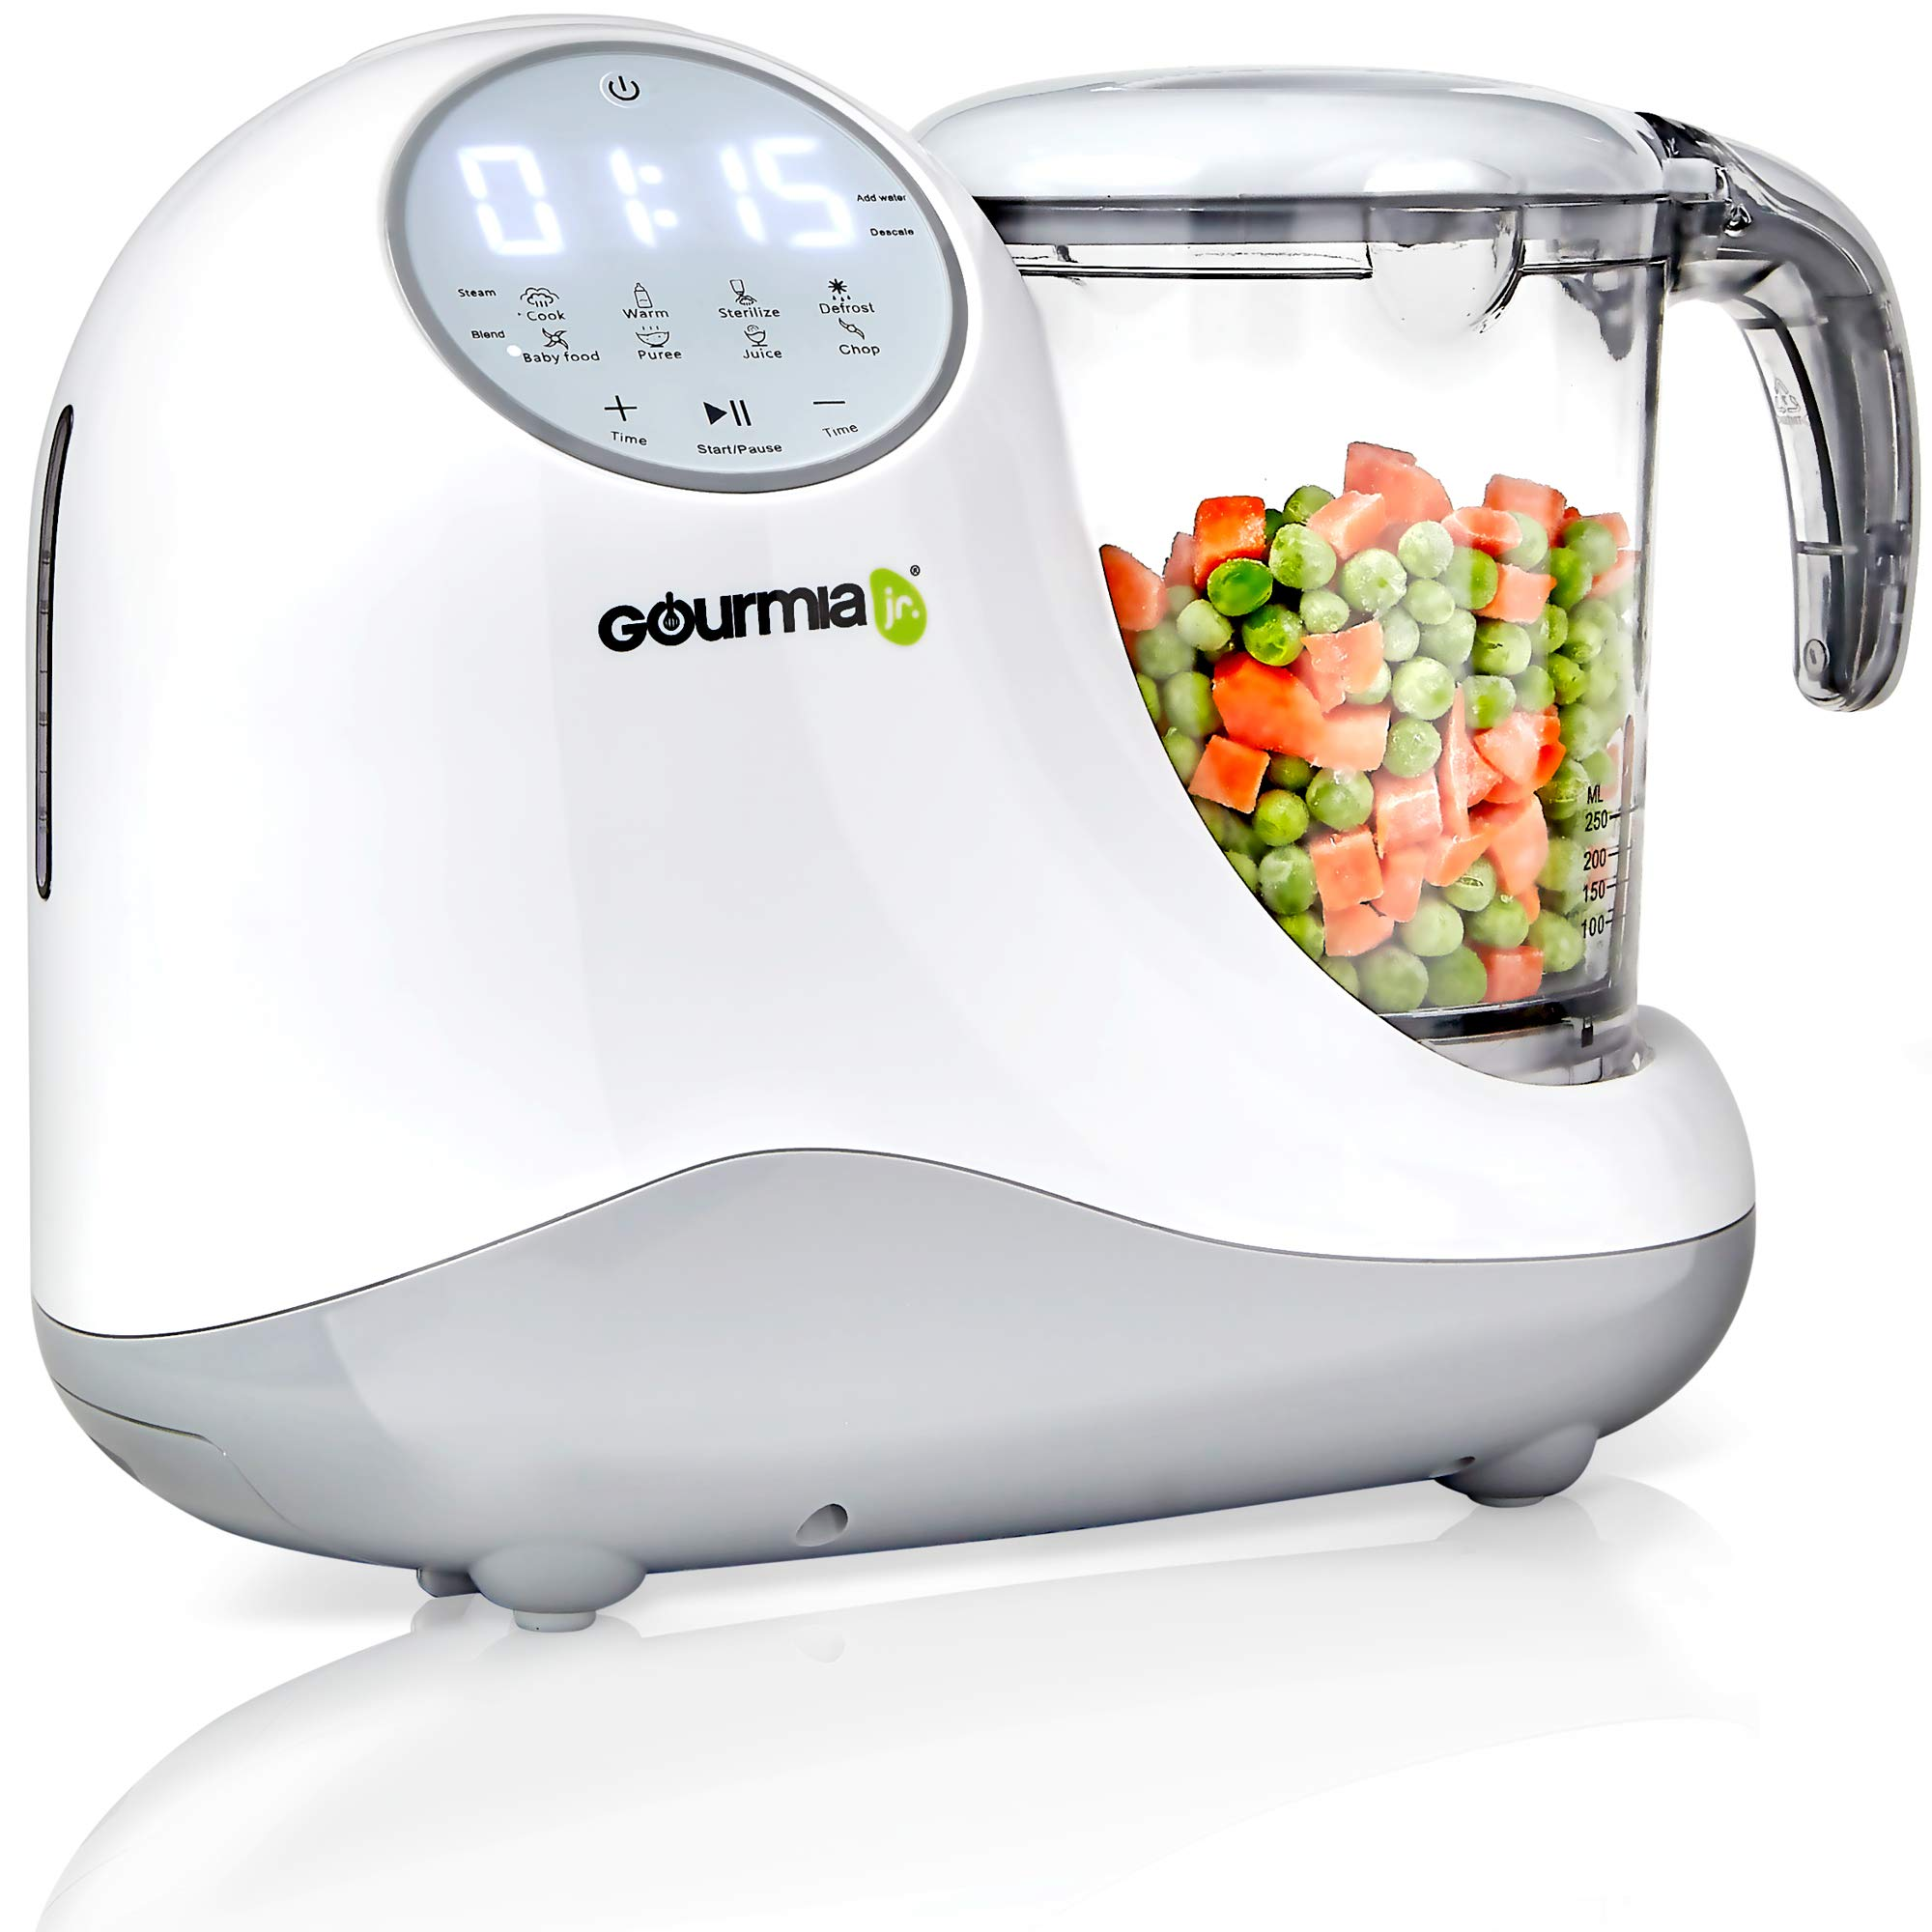 Gourmia Jr. 5-in-1 Baby Food Processor, 3 Tier Steaming,3 Blending Modes, Large Touch Display, JFP300, ETL-Certified by Gourmia (Image #1)